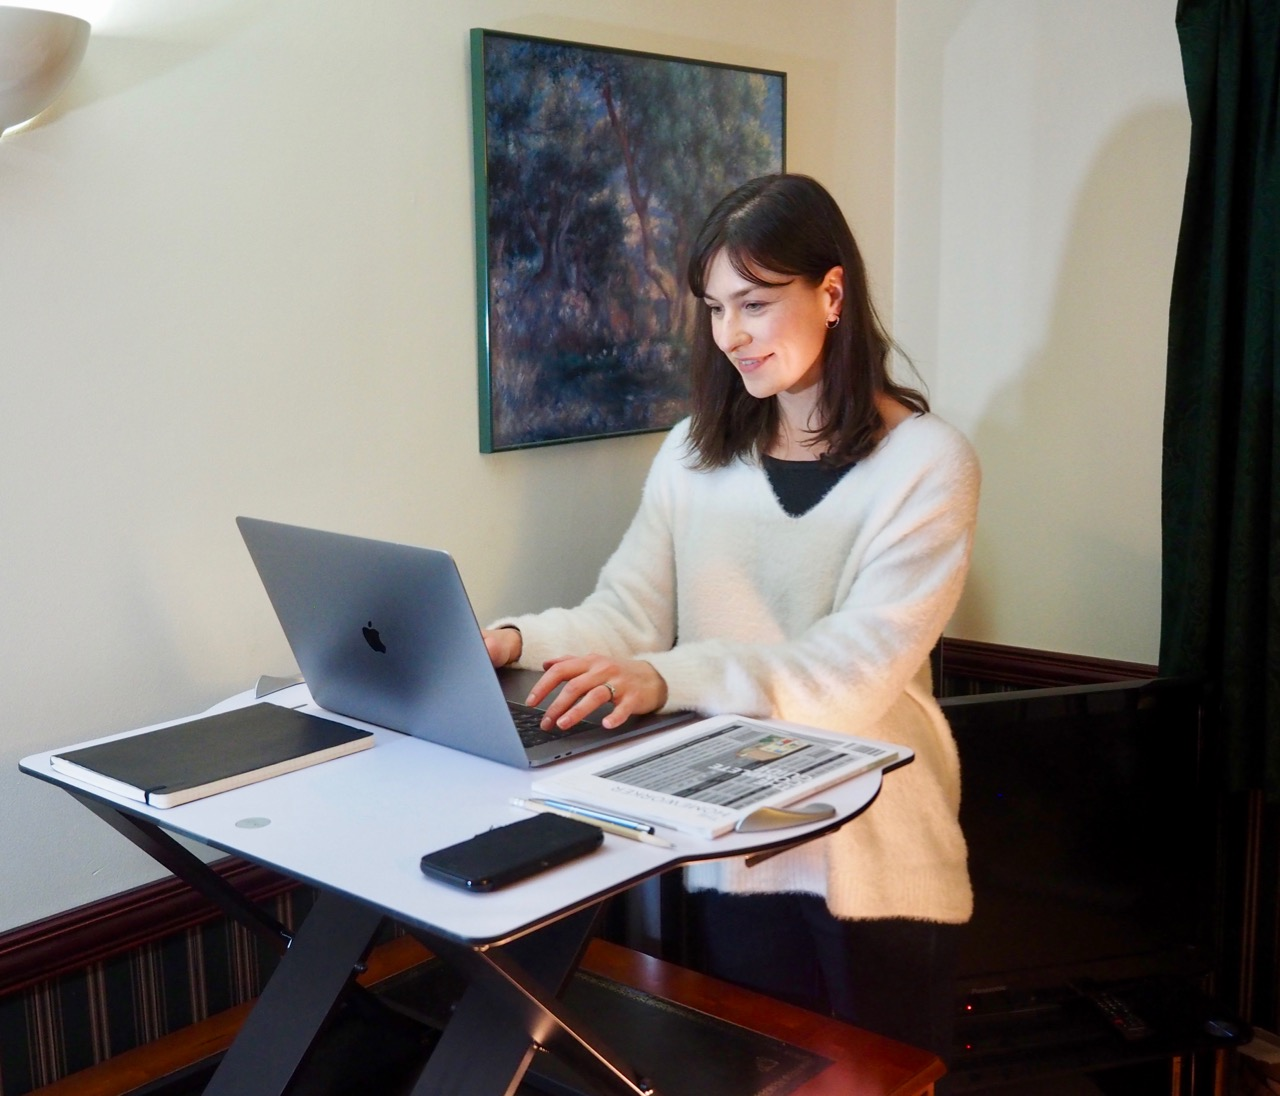 Louise Goss using the Opløft sit-stand platform by Posturite